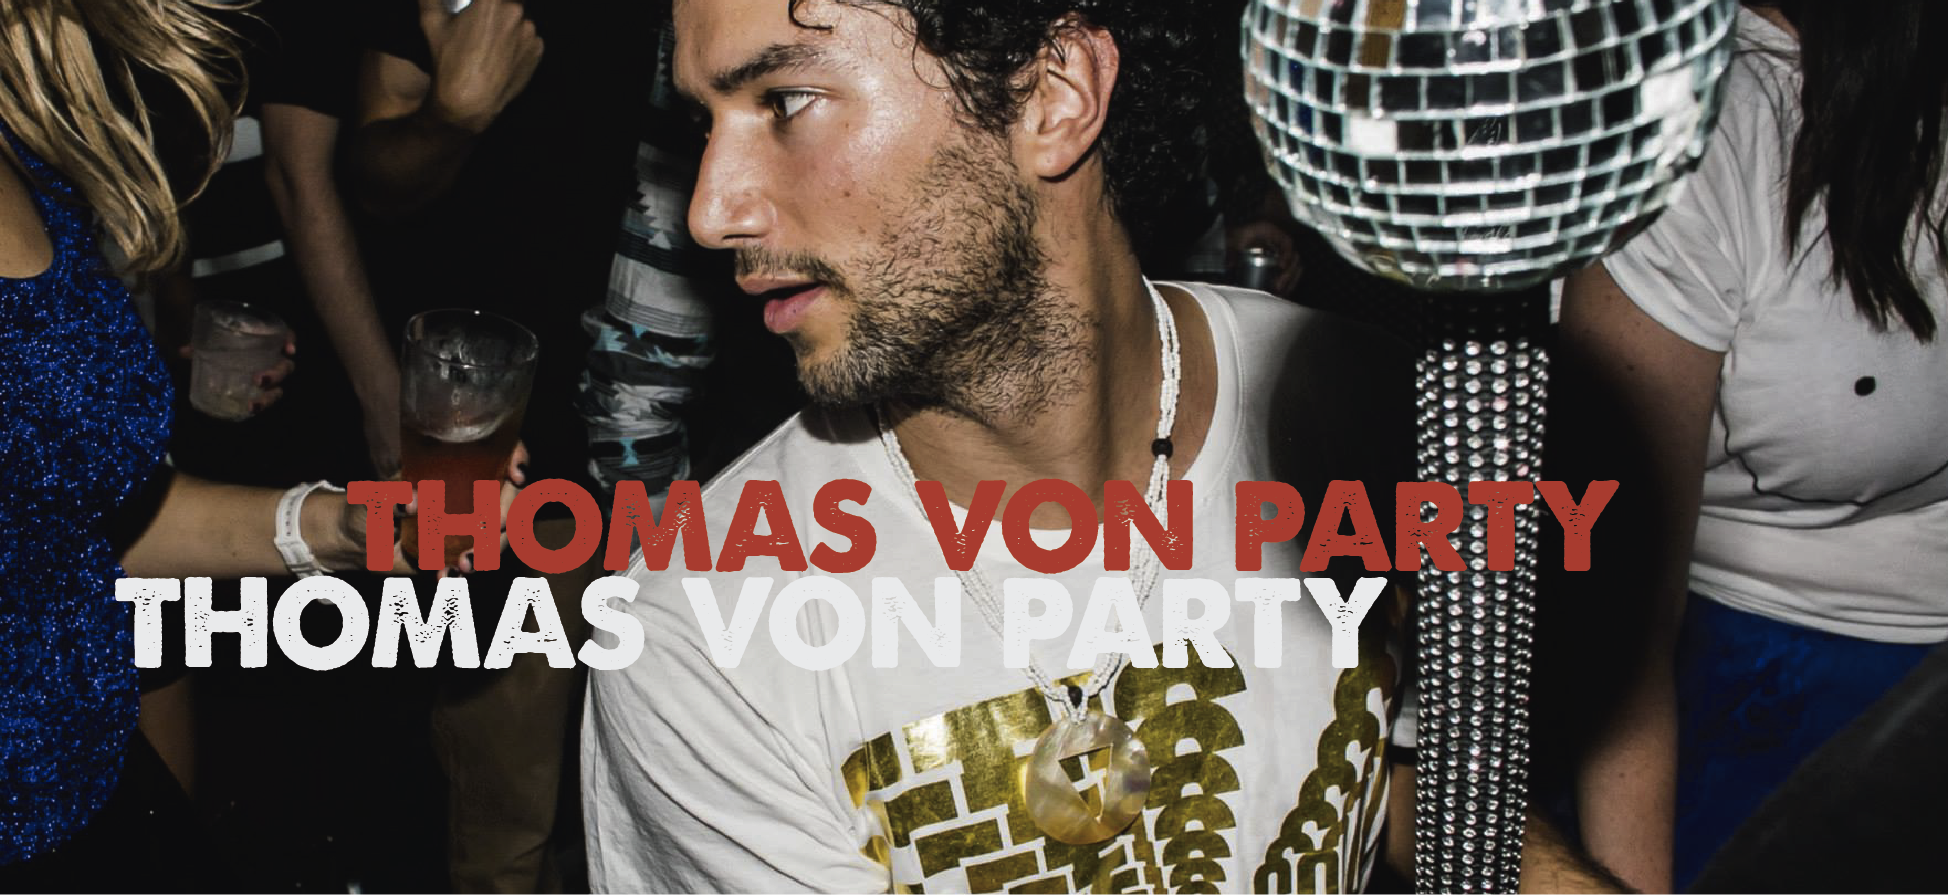 Profile: THOMAS VON PARTY / MULTI CUTI